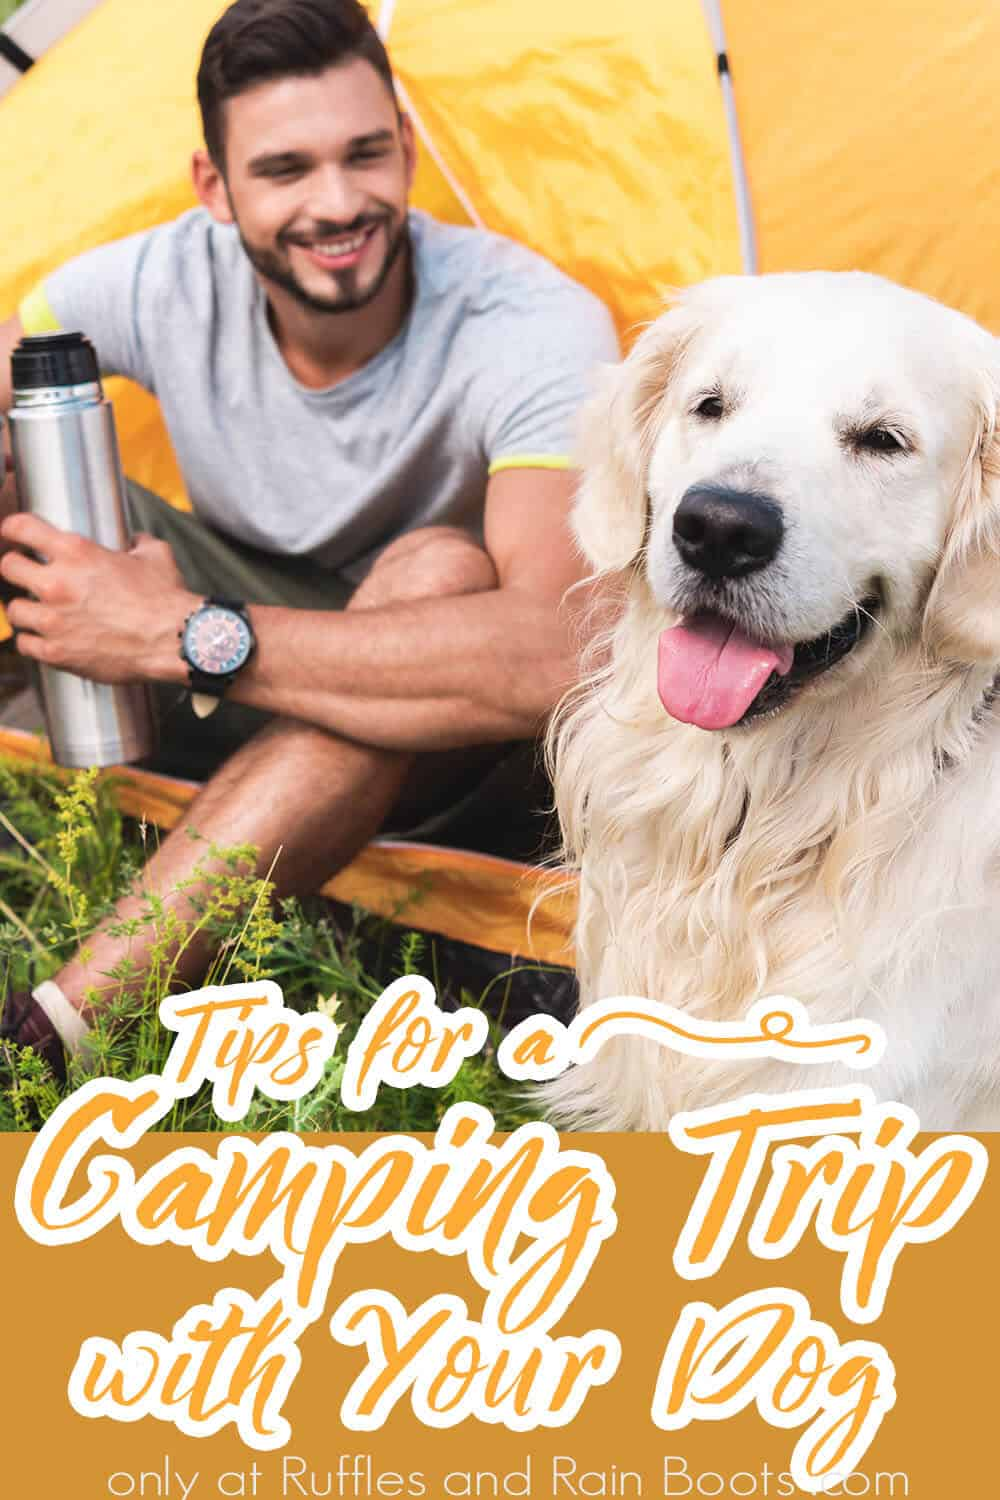 tips for camping out with your dog with text which reads tips for a camping trip with your dog